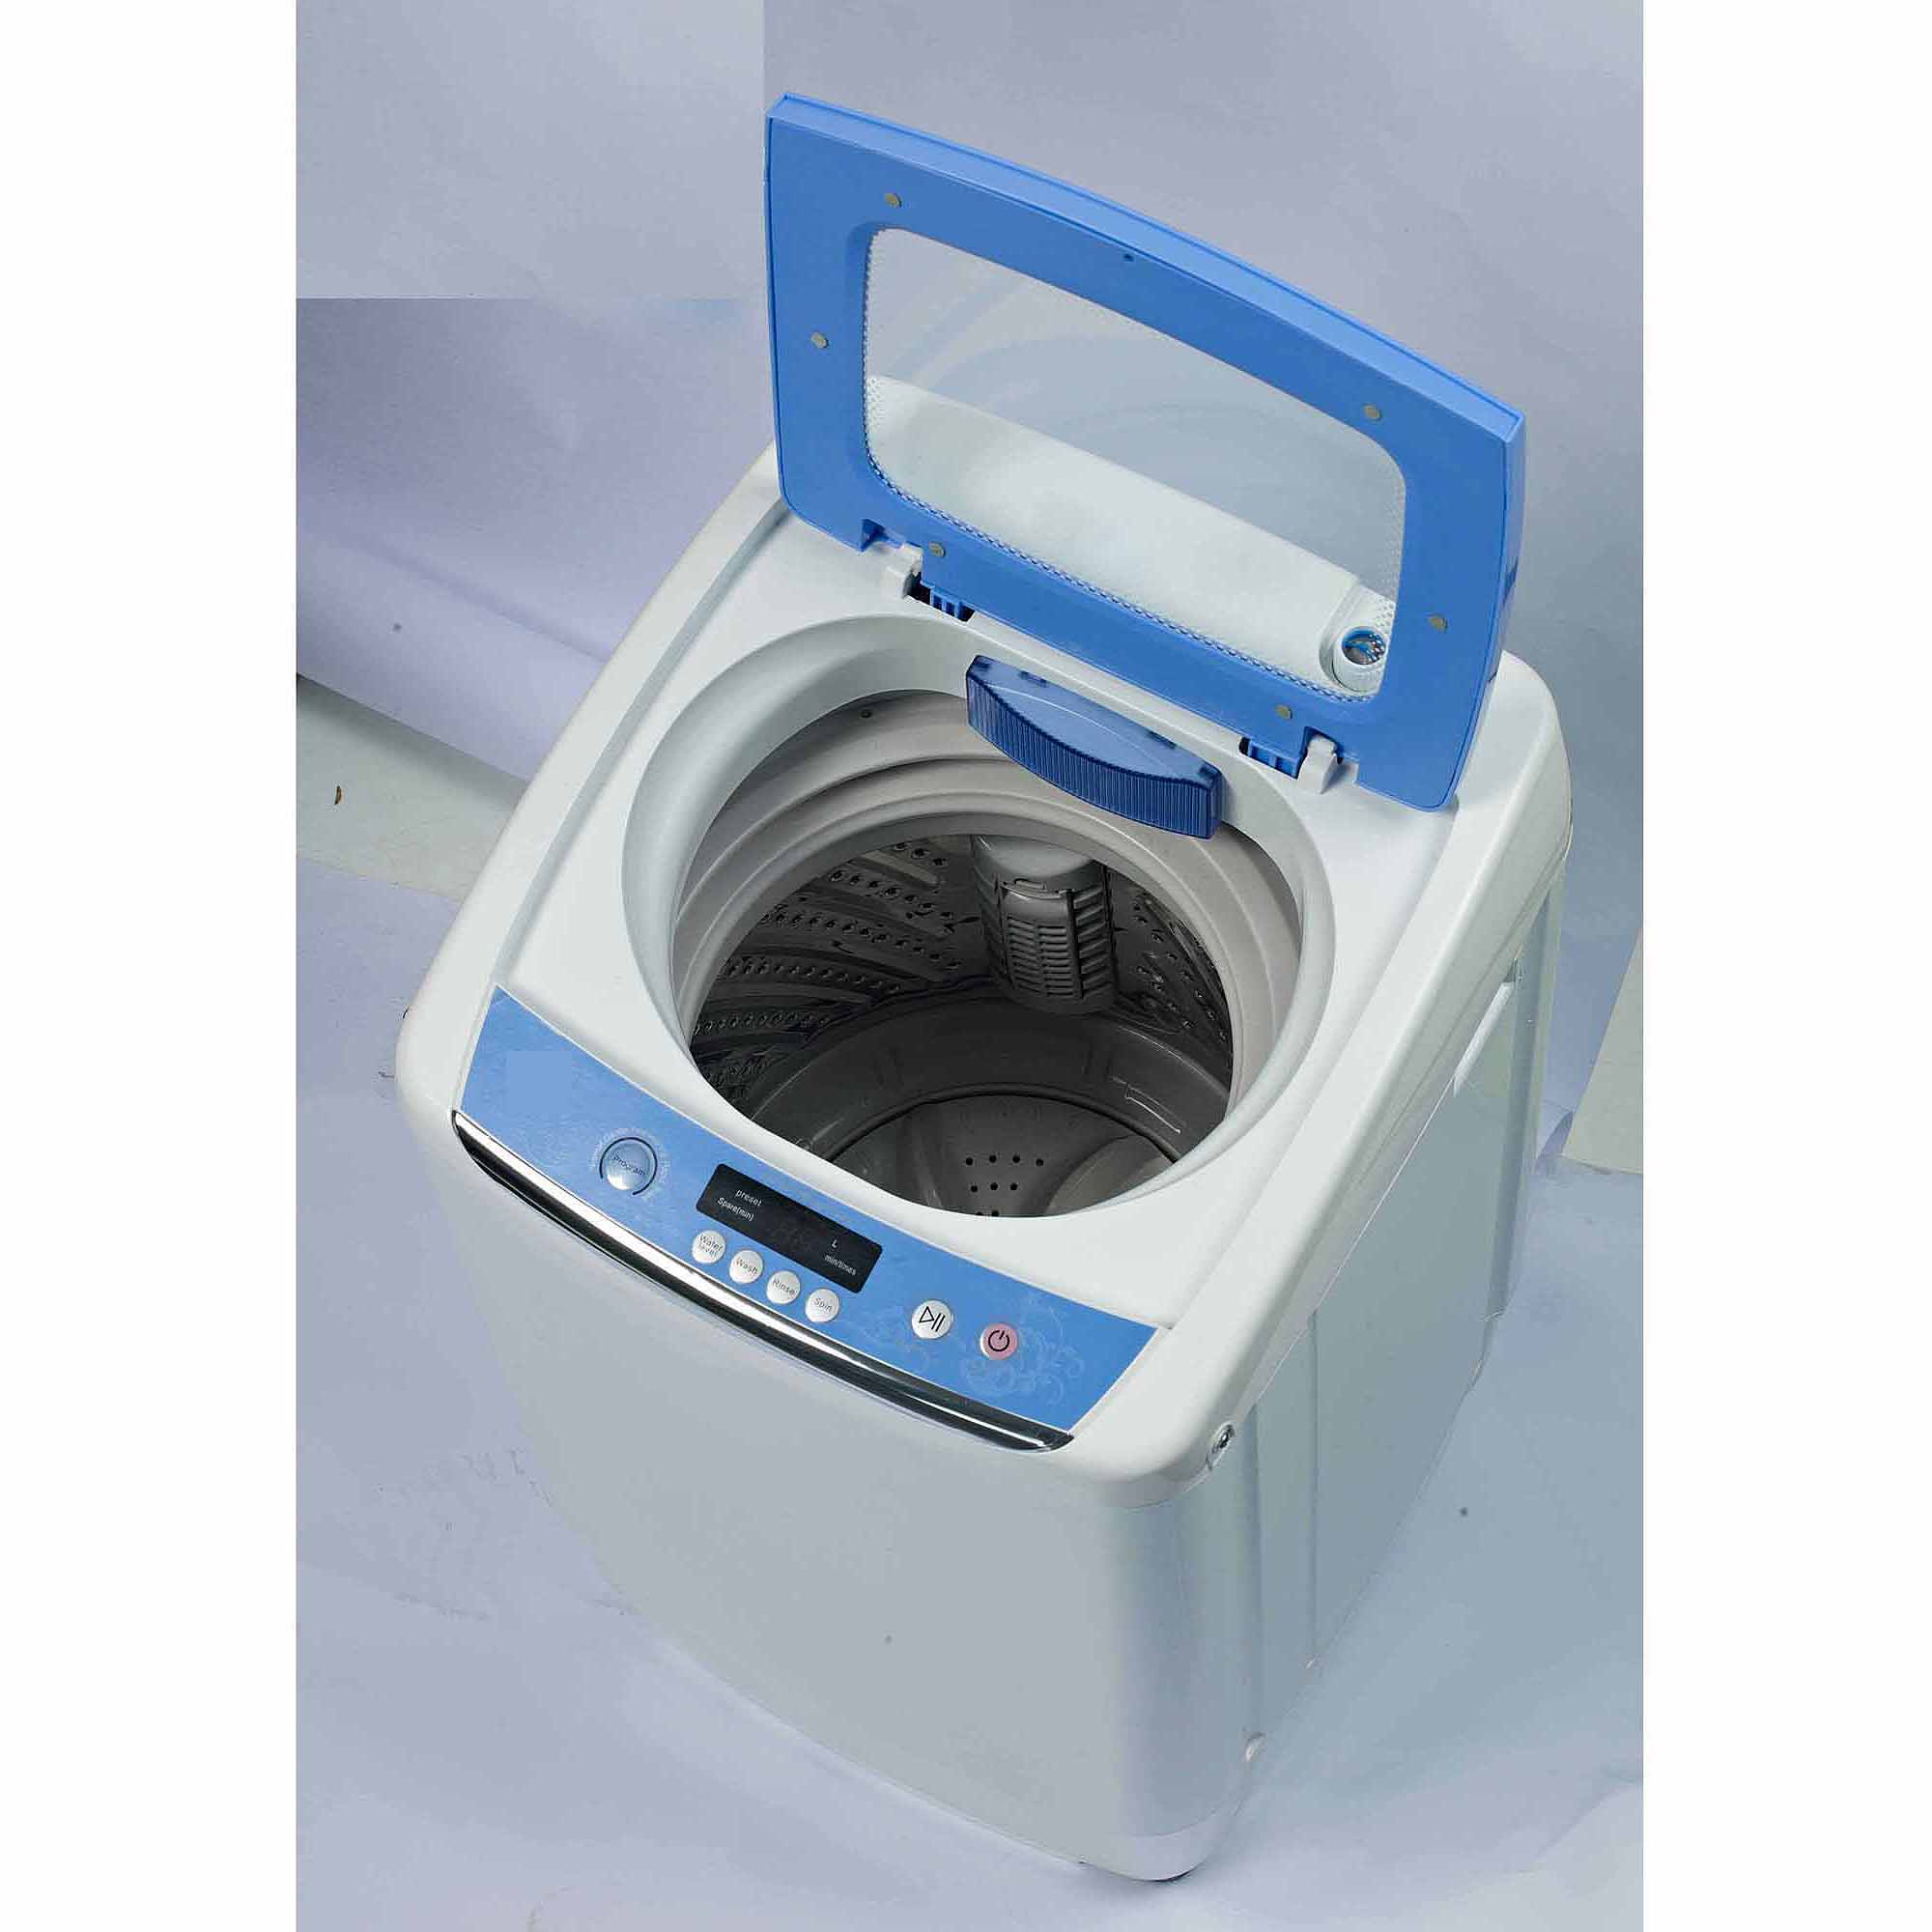 RCA 0.9 cu ft Portable Washer, White - Walmart.com